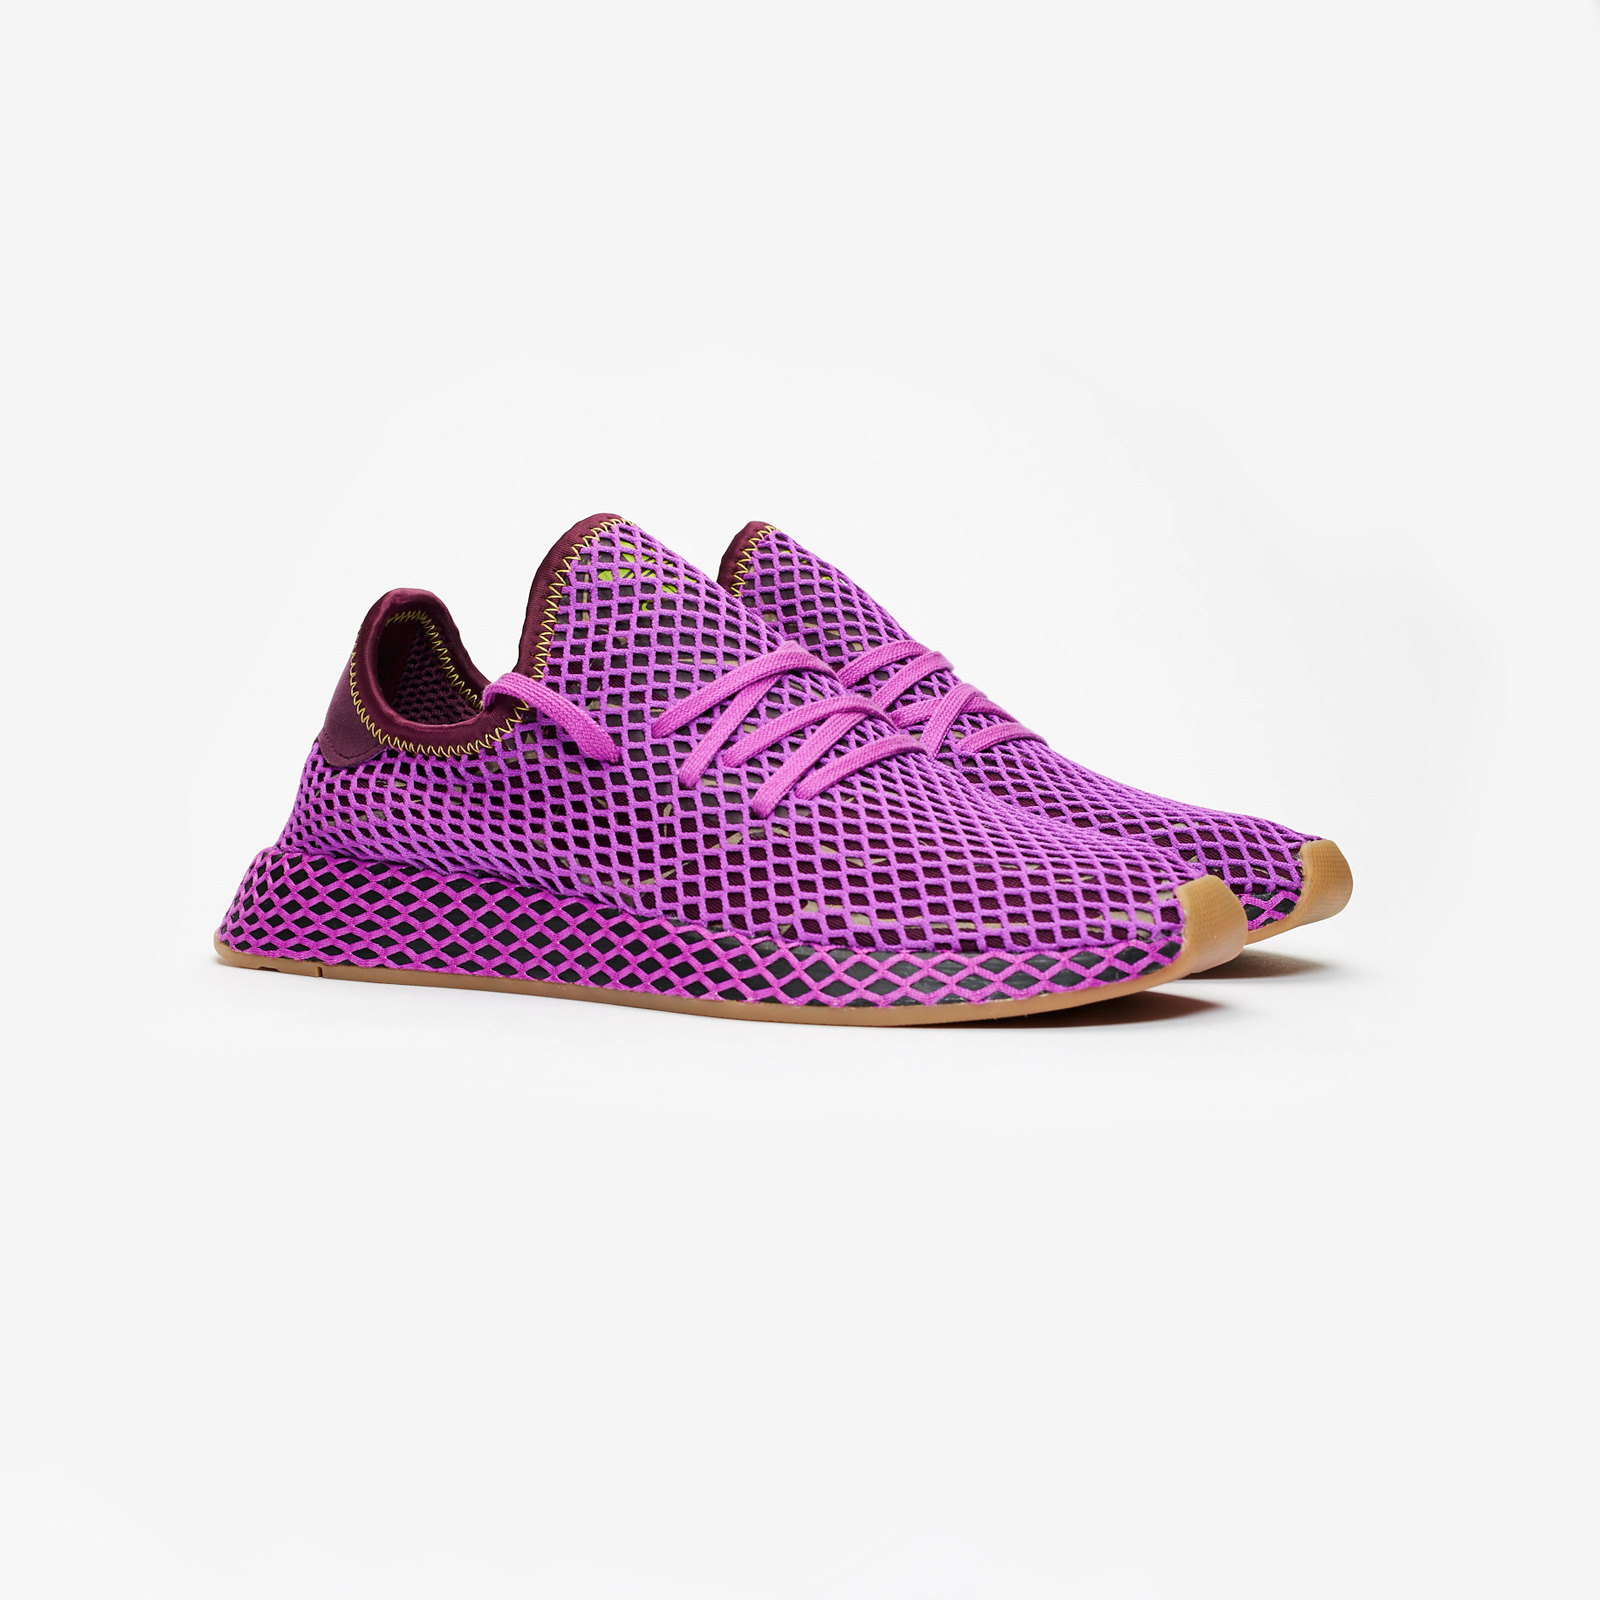 bd69072767da adidas Deerupt x Dragon Ball Z - D97052 - Sneakersnstuff